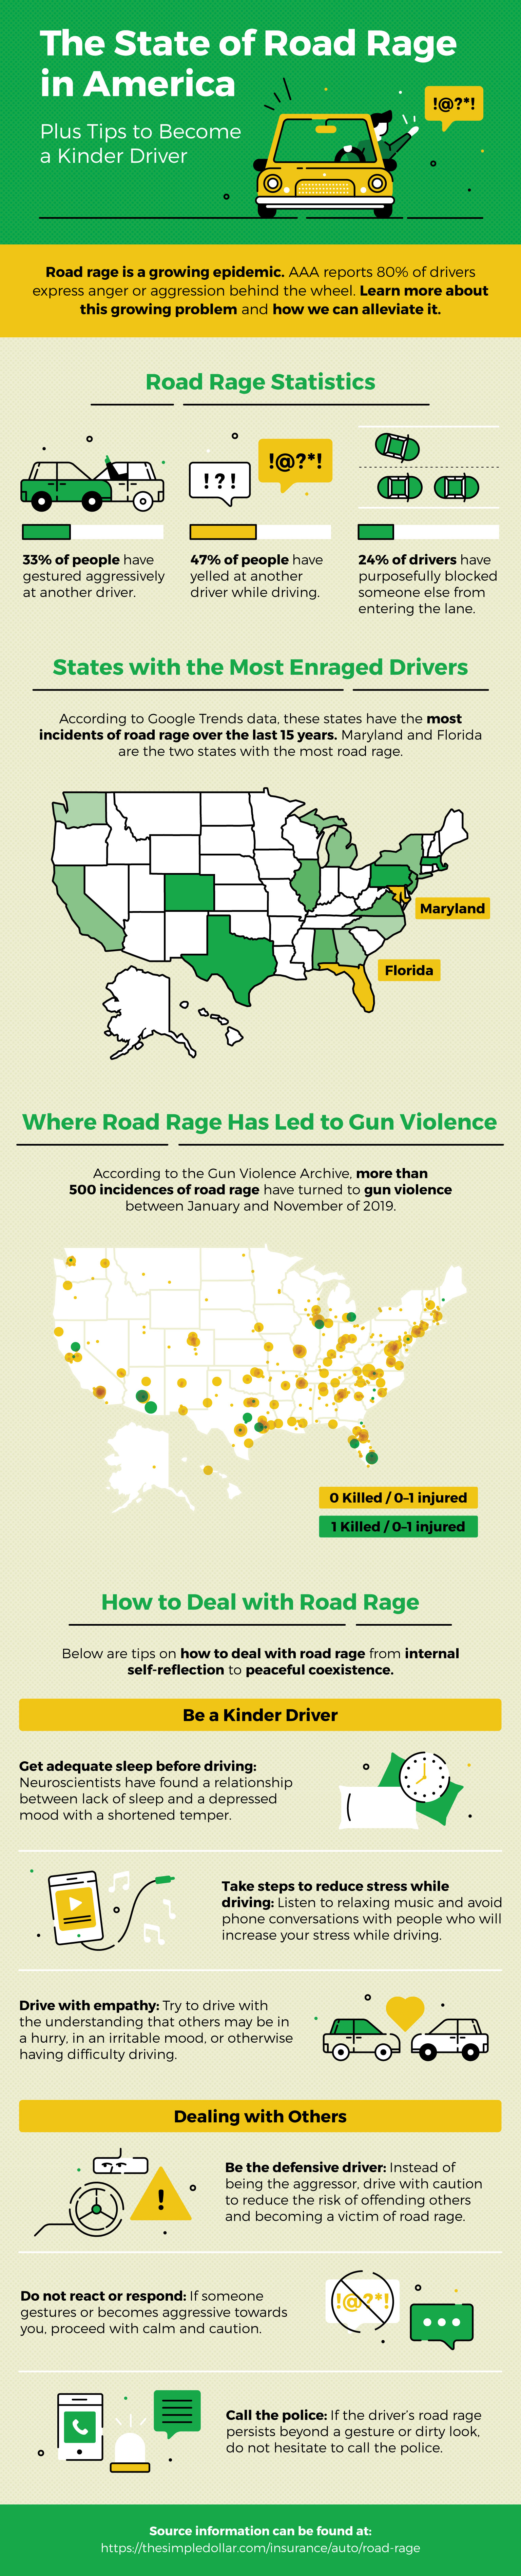 state of road rage in america